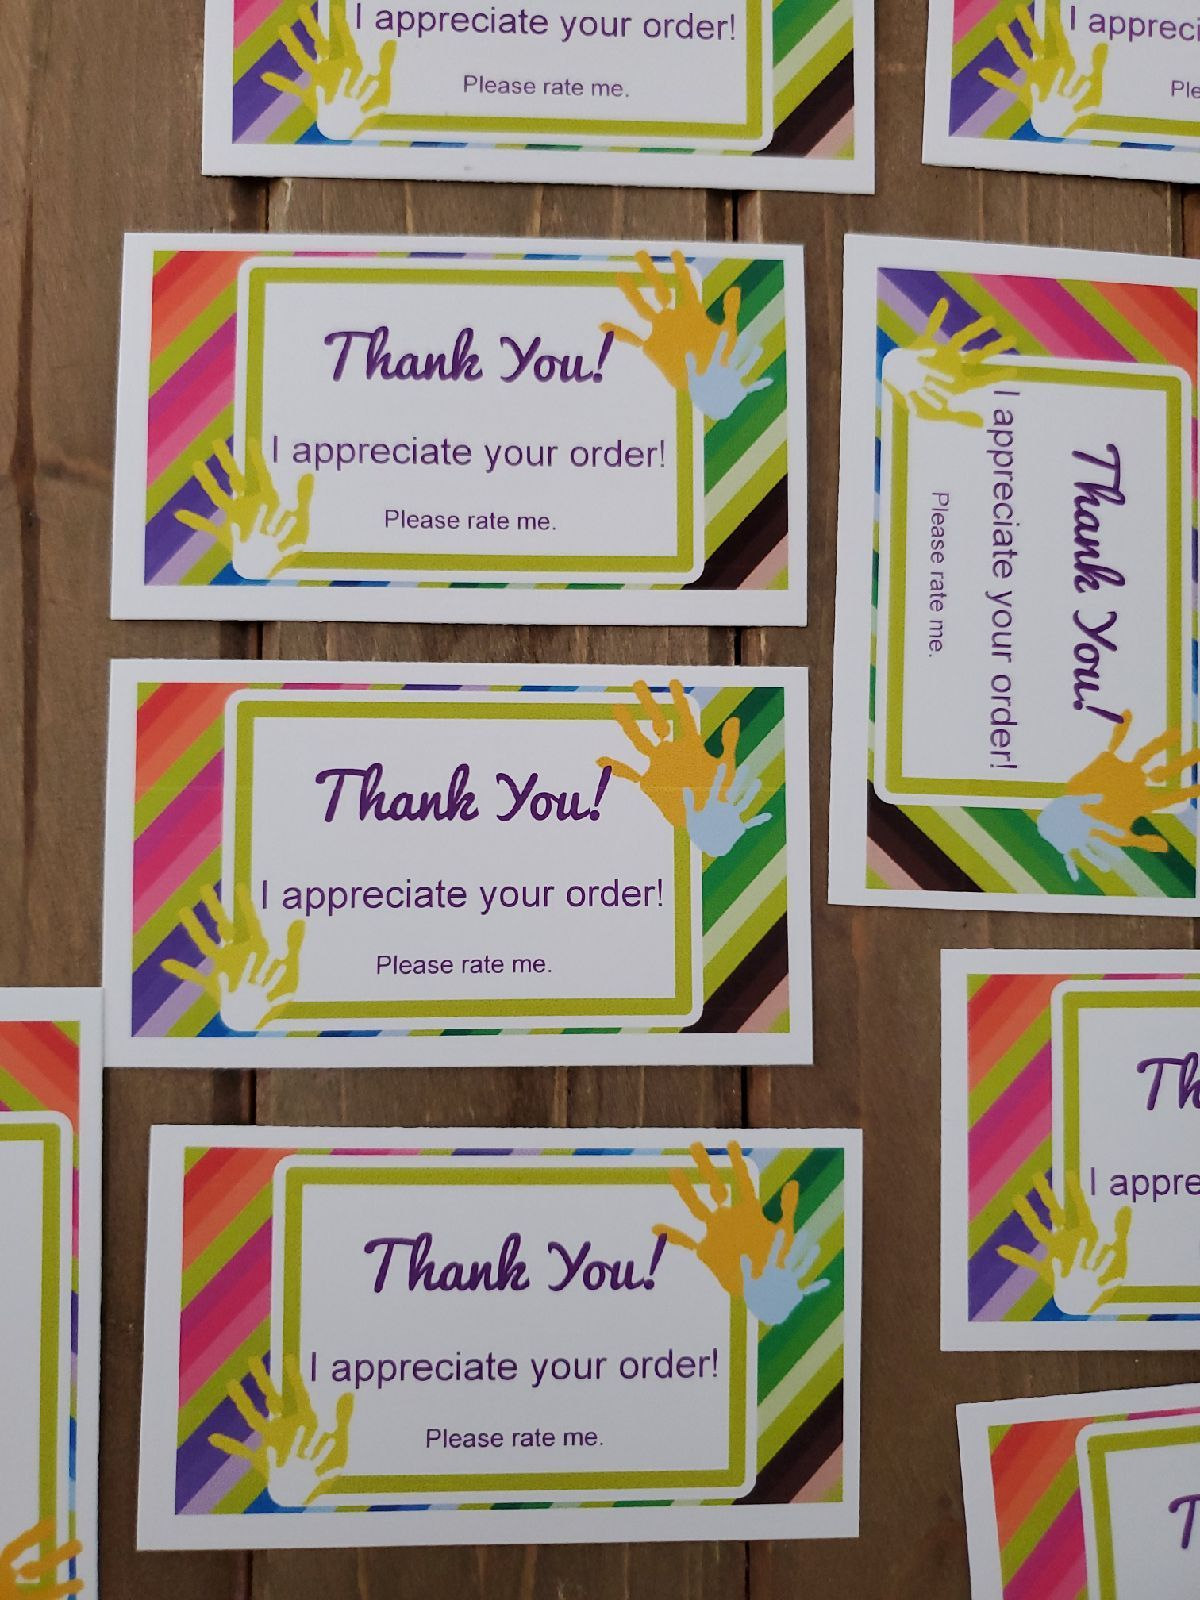 thank you cards 50 business card size  mercari in 2020